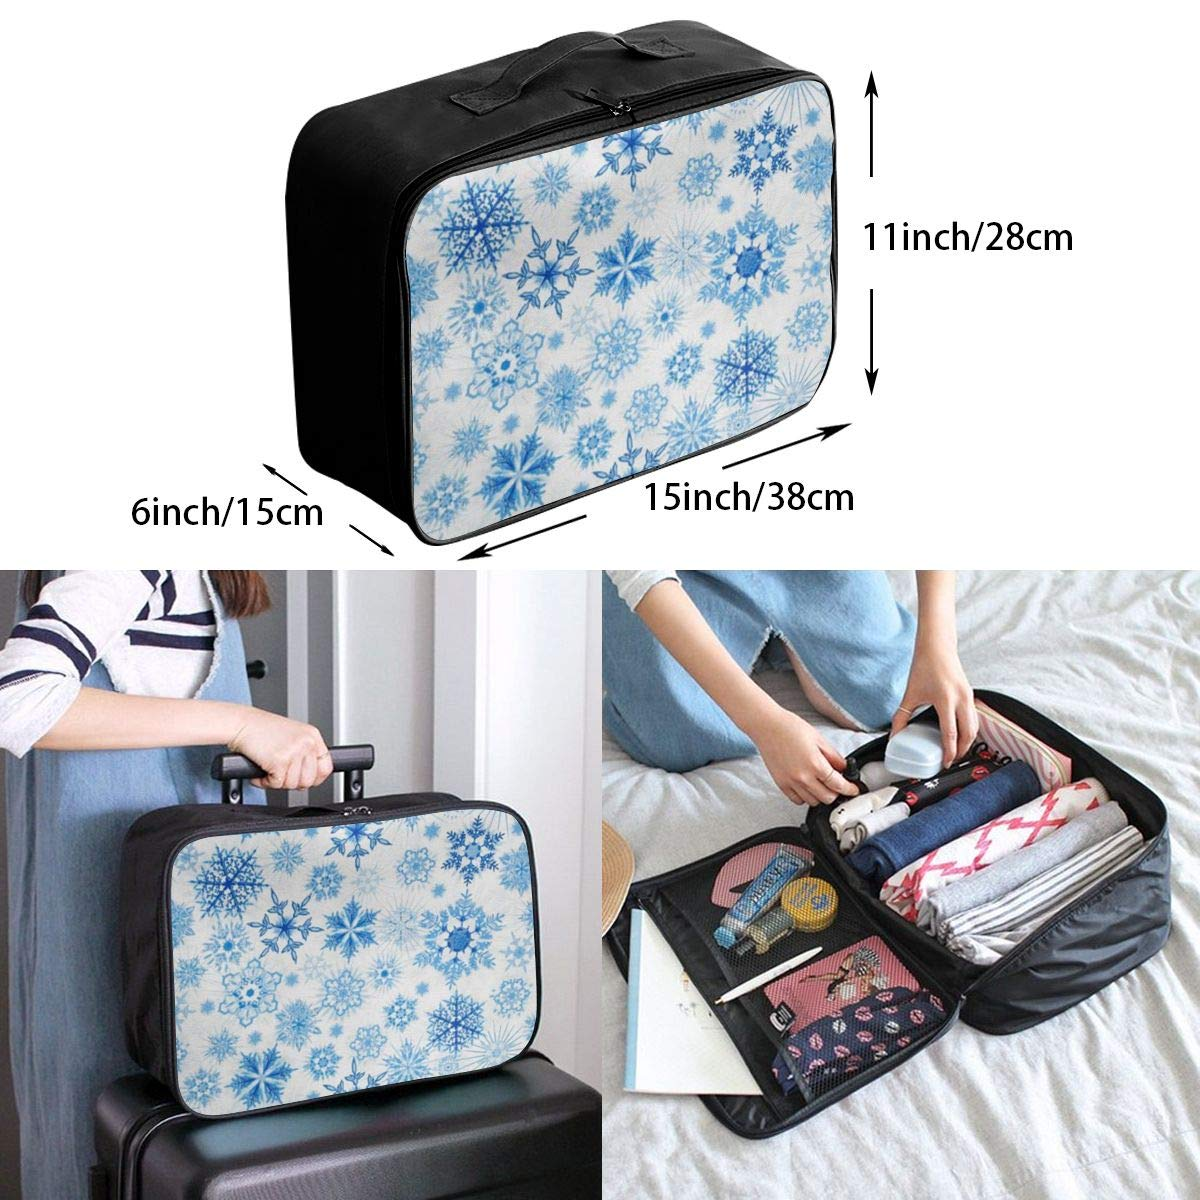 ADGAI Winter Frost Glitter Snowflakes Canvas Travel Weekender Bag,Fashion Custom Lightweight Large Capacity Portable Luggage Bag,Suitcase Trolley Bag